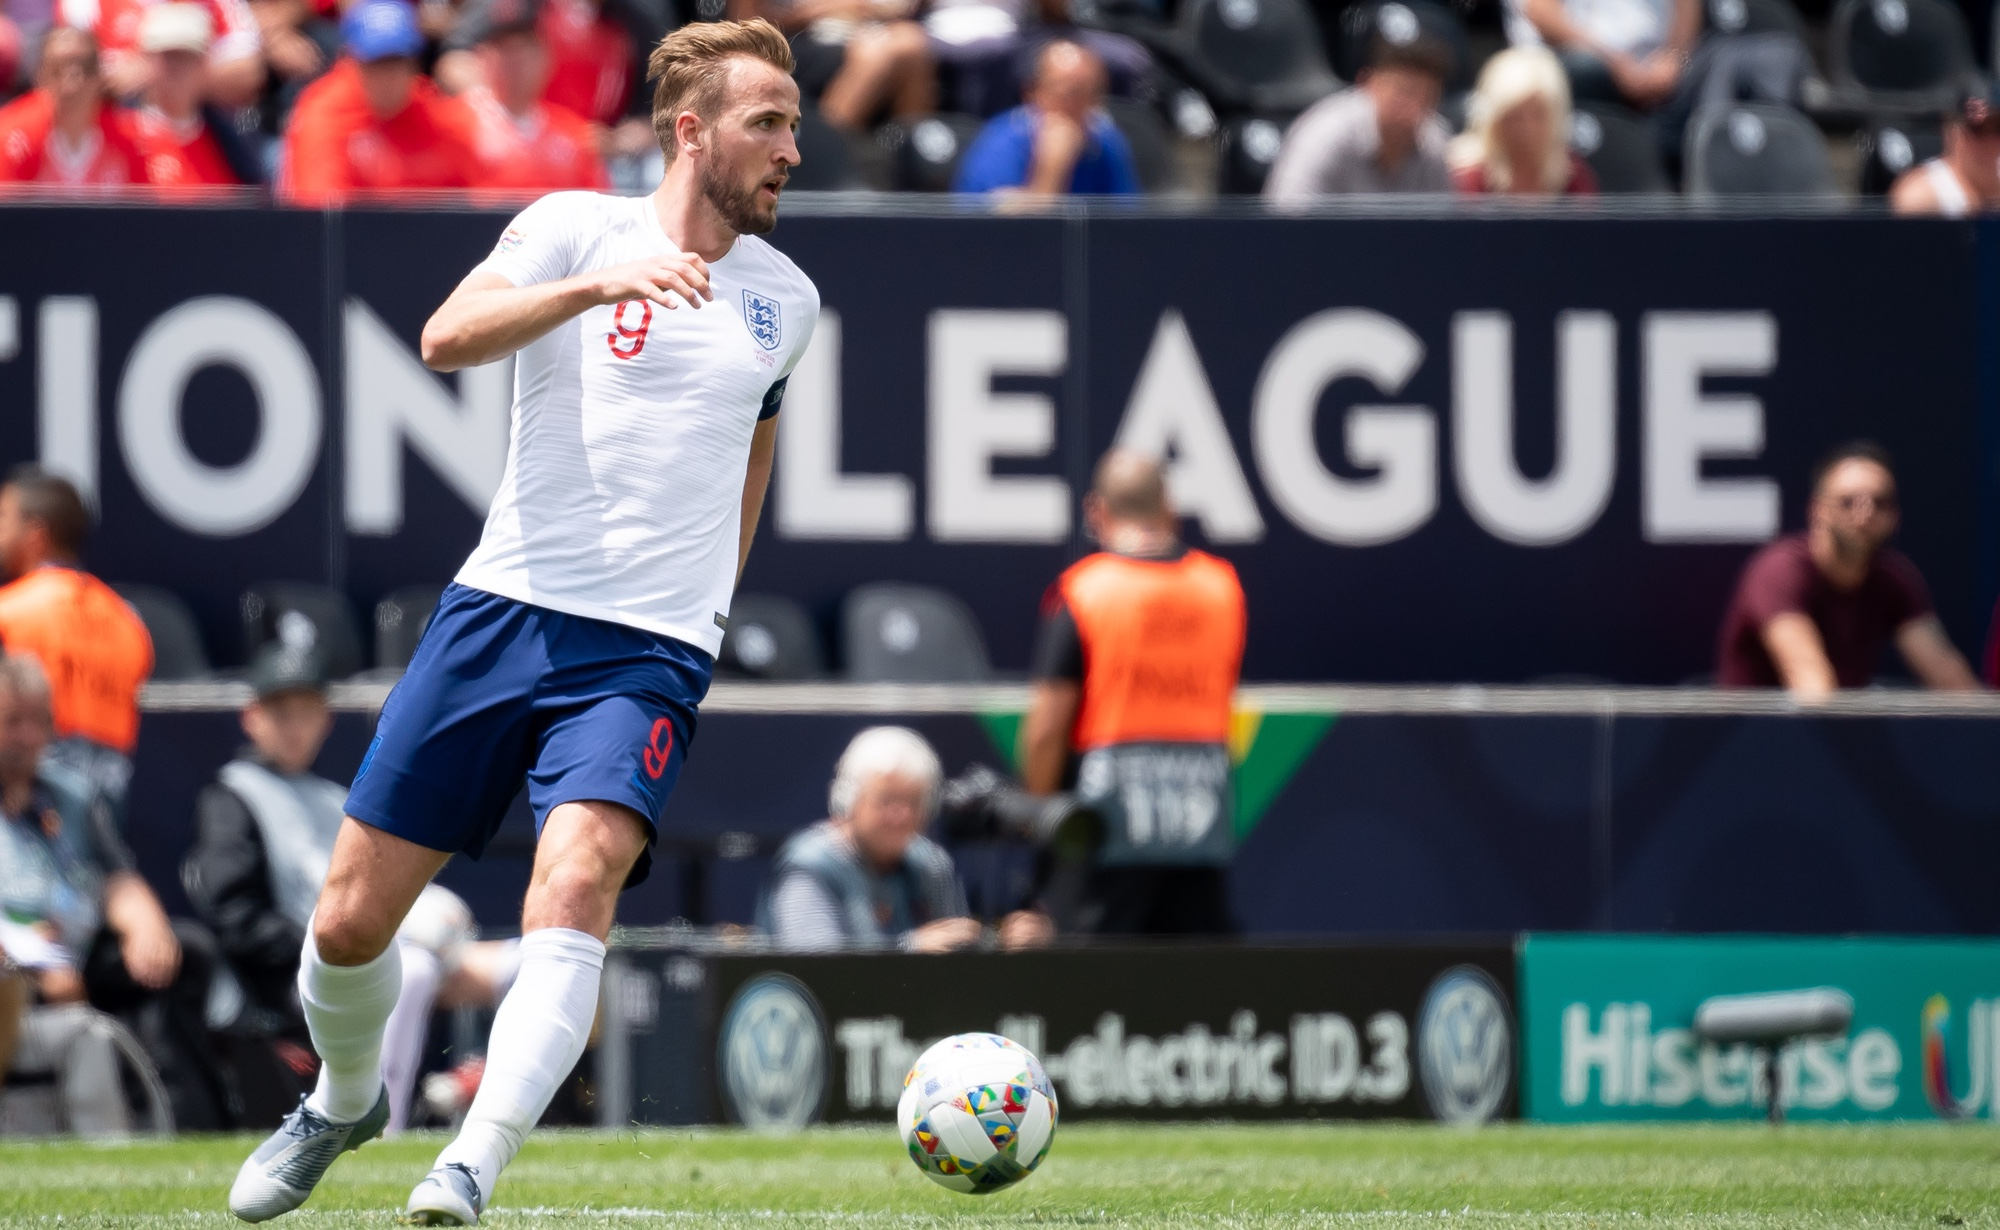 Iceland Vs England Live Stream How To Watch Nations League Soccer Tom S Guide